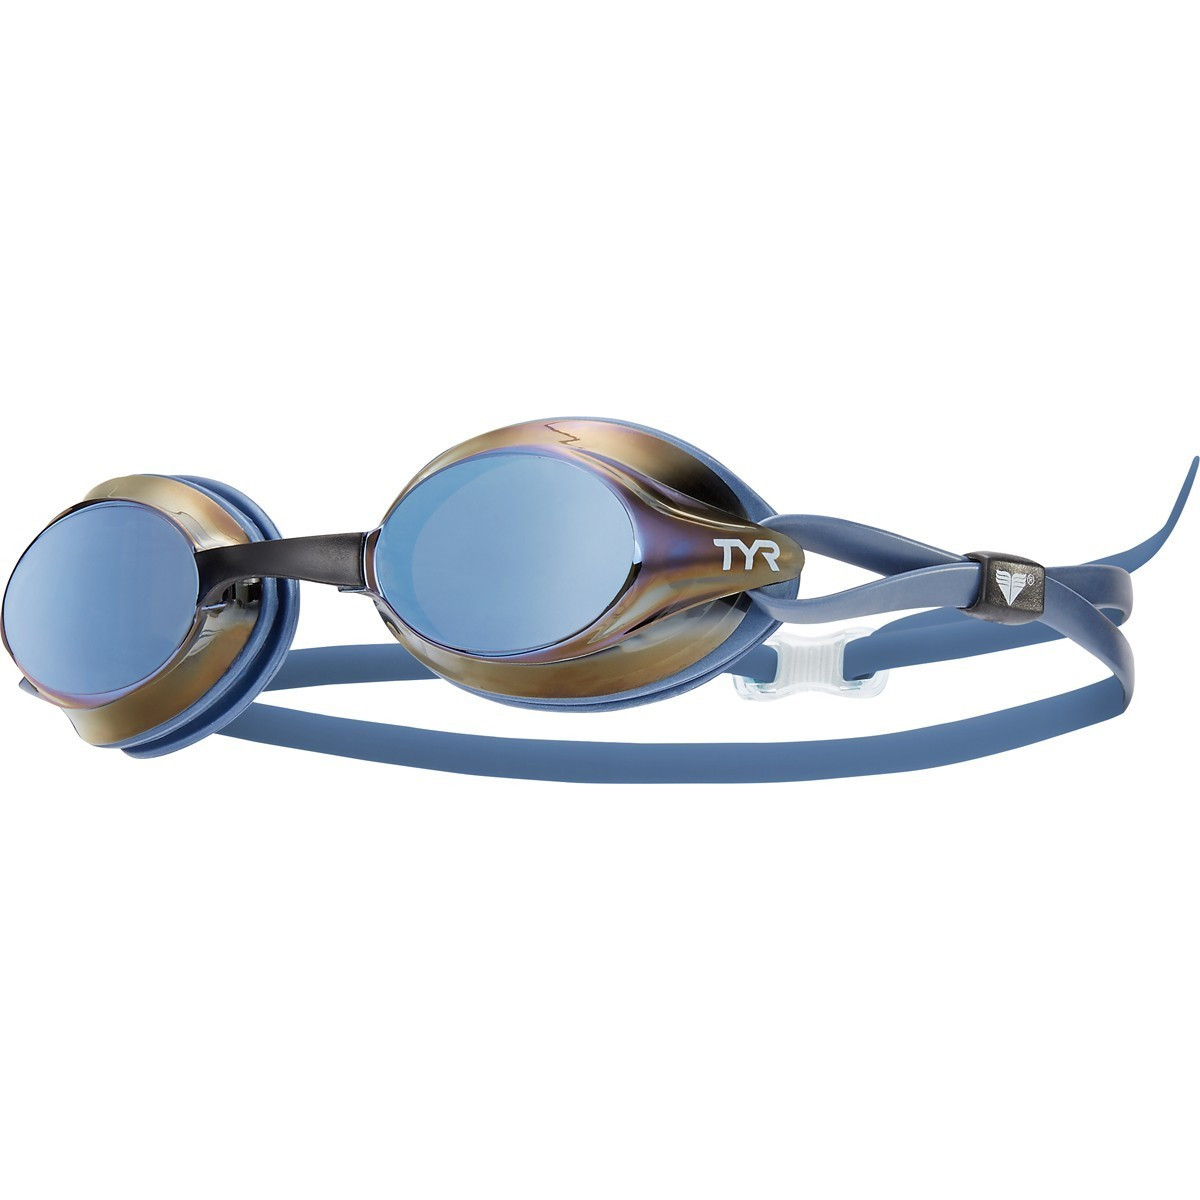 TYR Velocity Metallized Goggles - 2019 price